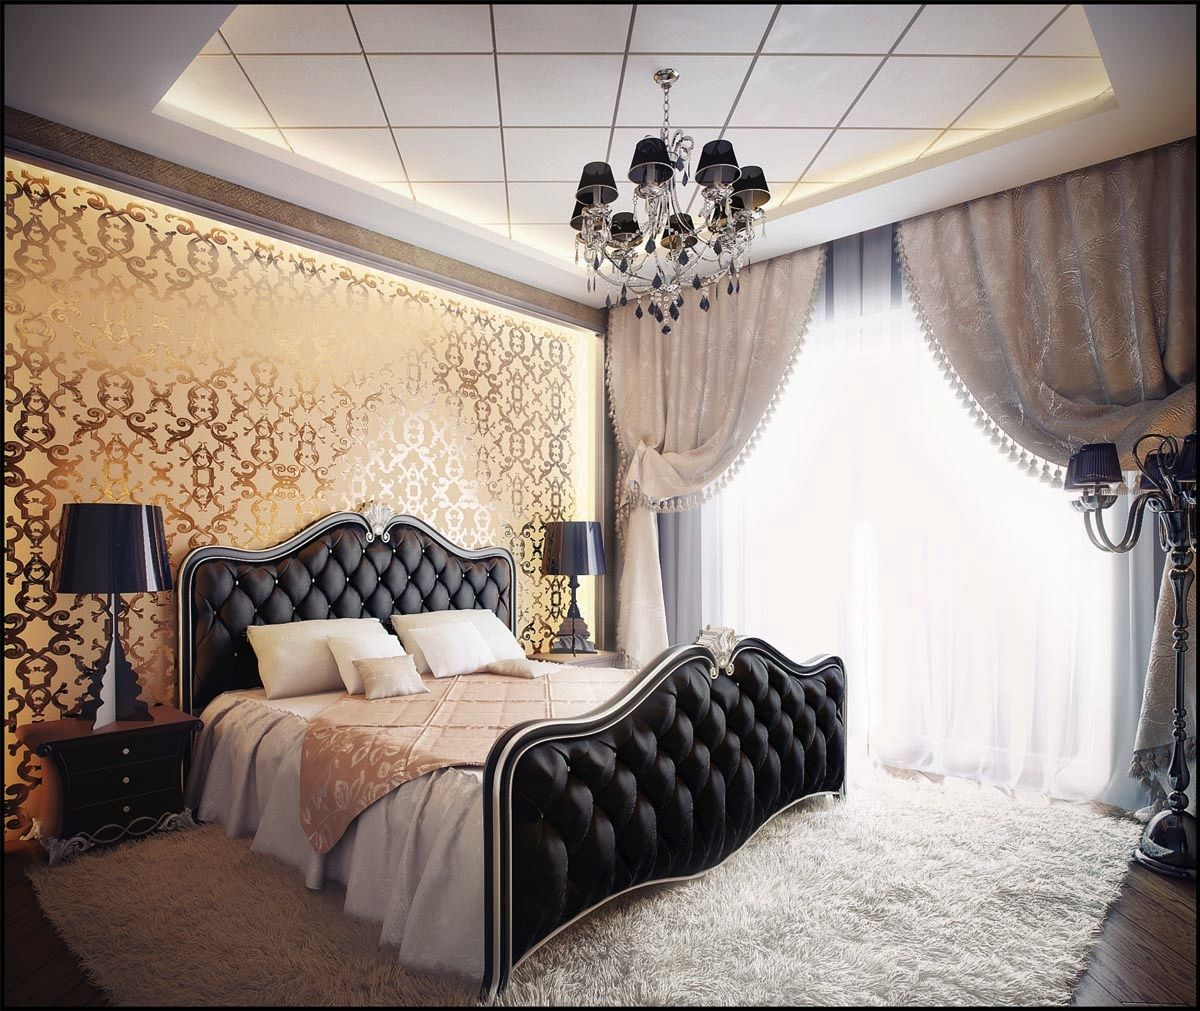 Decorating Elegant Bedroom Designs Adding A Perfect Classic And Cool Elegant Bedrooms Designs Inspiration Design